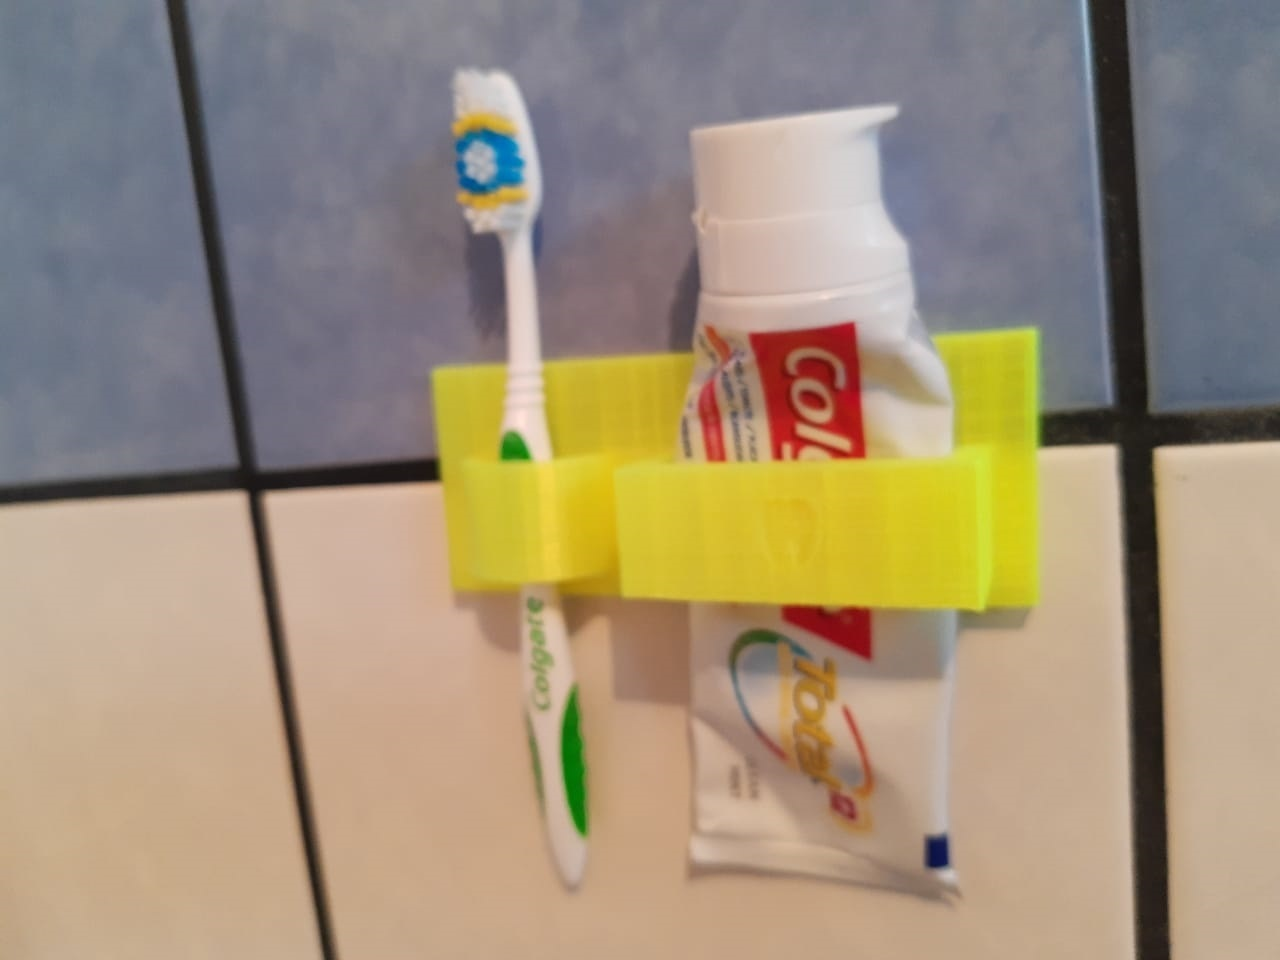 cep3.jpg Download free STL file Toothbrush • Template to 3D print, Mihael